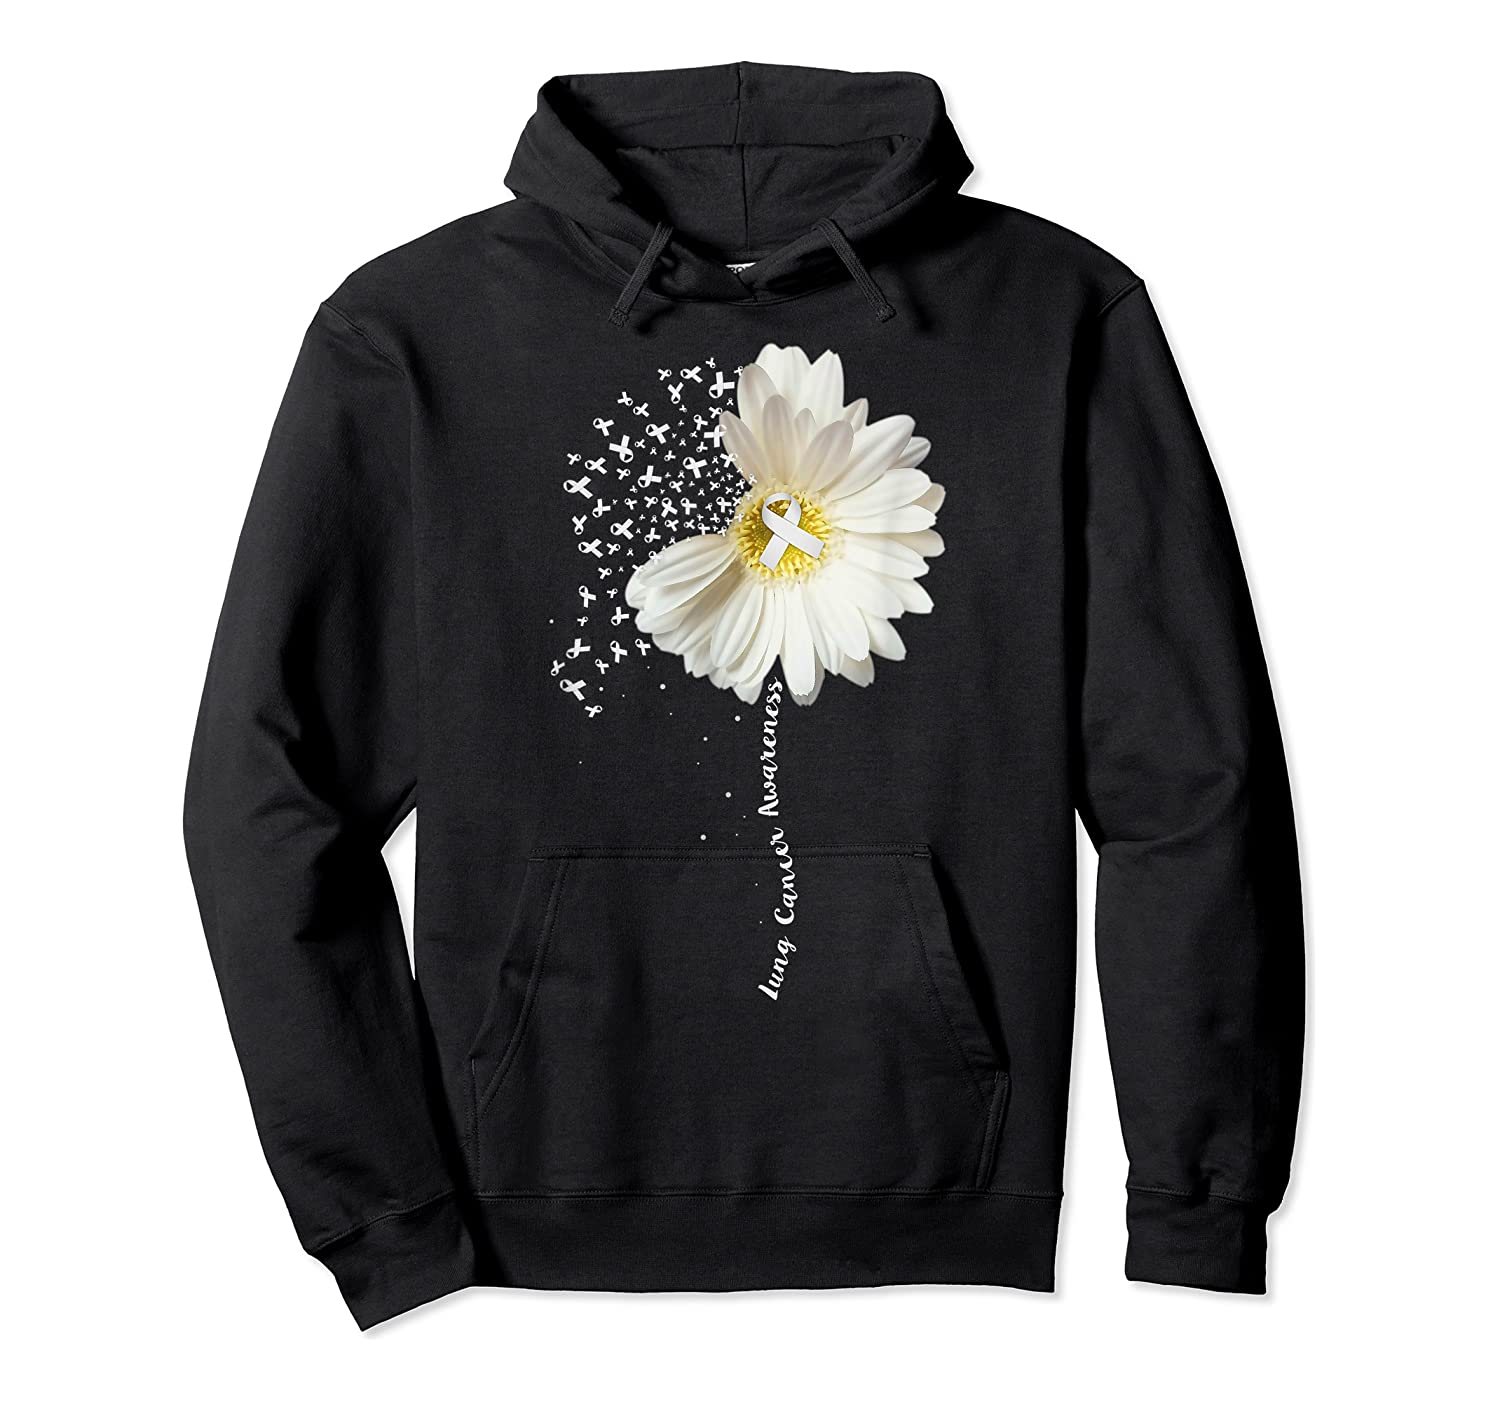 Lung Cancer Awareness Sunflower Ribbon Gift Shirts Unisex Pullover Hoodie